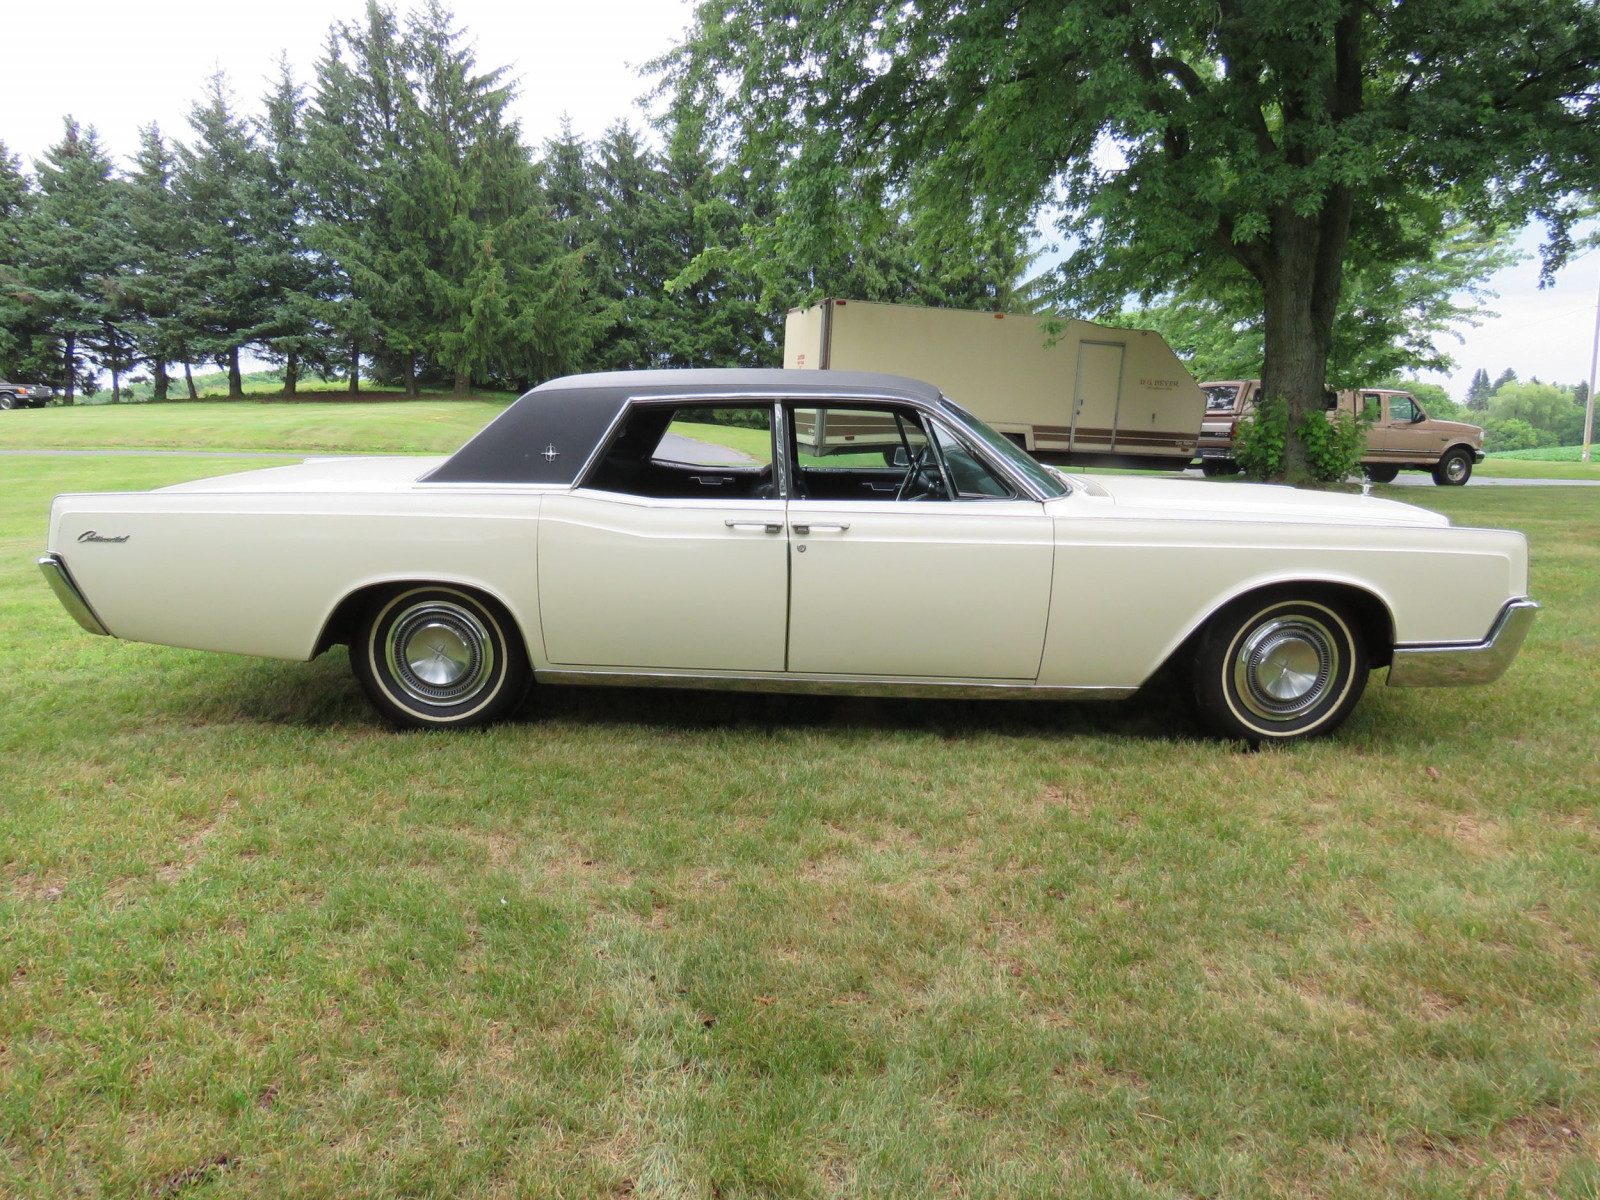 1967 Lincoln Continental 4dr HT Suicide Sedan - Image 4